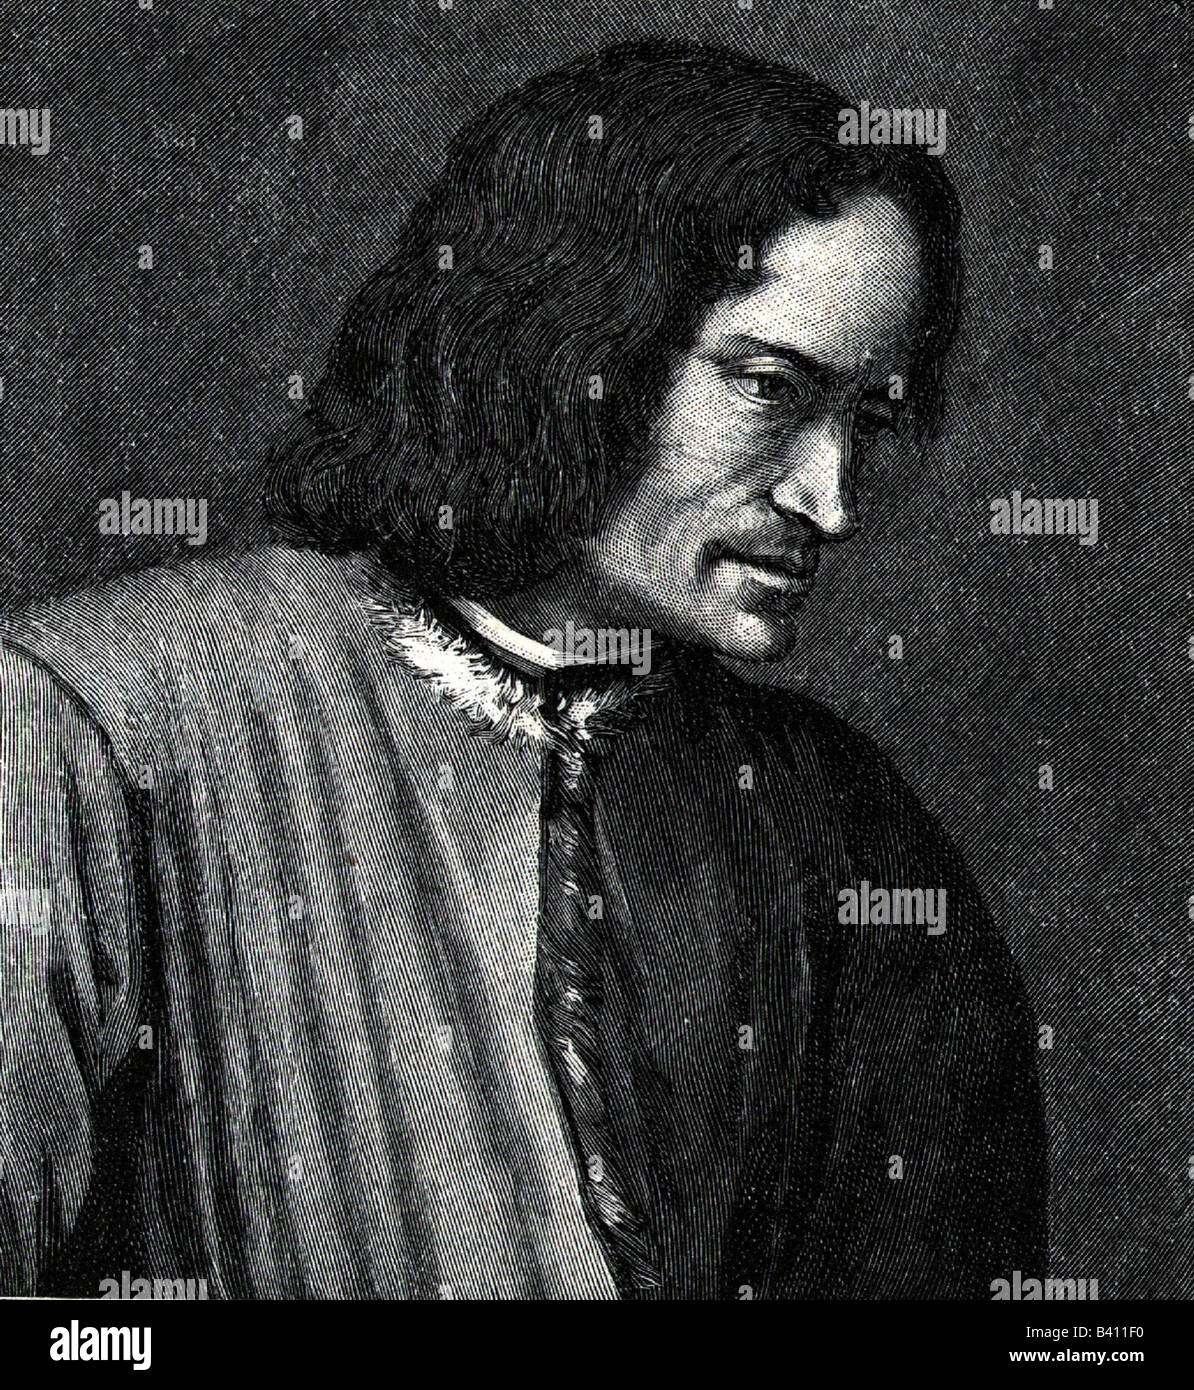 """Medici, Lorenzo I deS , """"the Magnificnet"""",  1.1.1449 - 8.4.1492, ruler of Florence 1469 - 1492, portrait, side view, Stock Photo"""